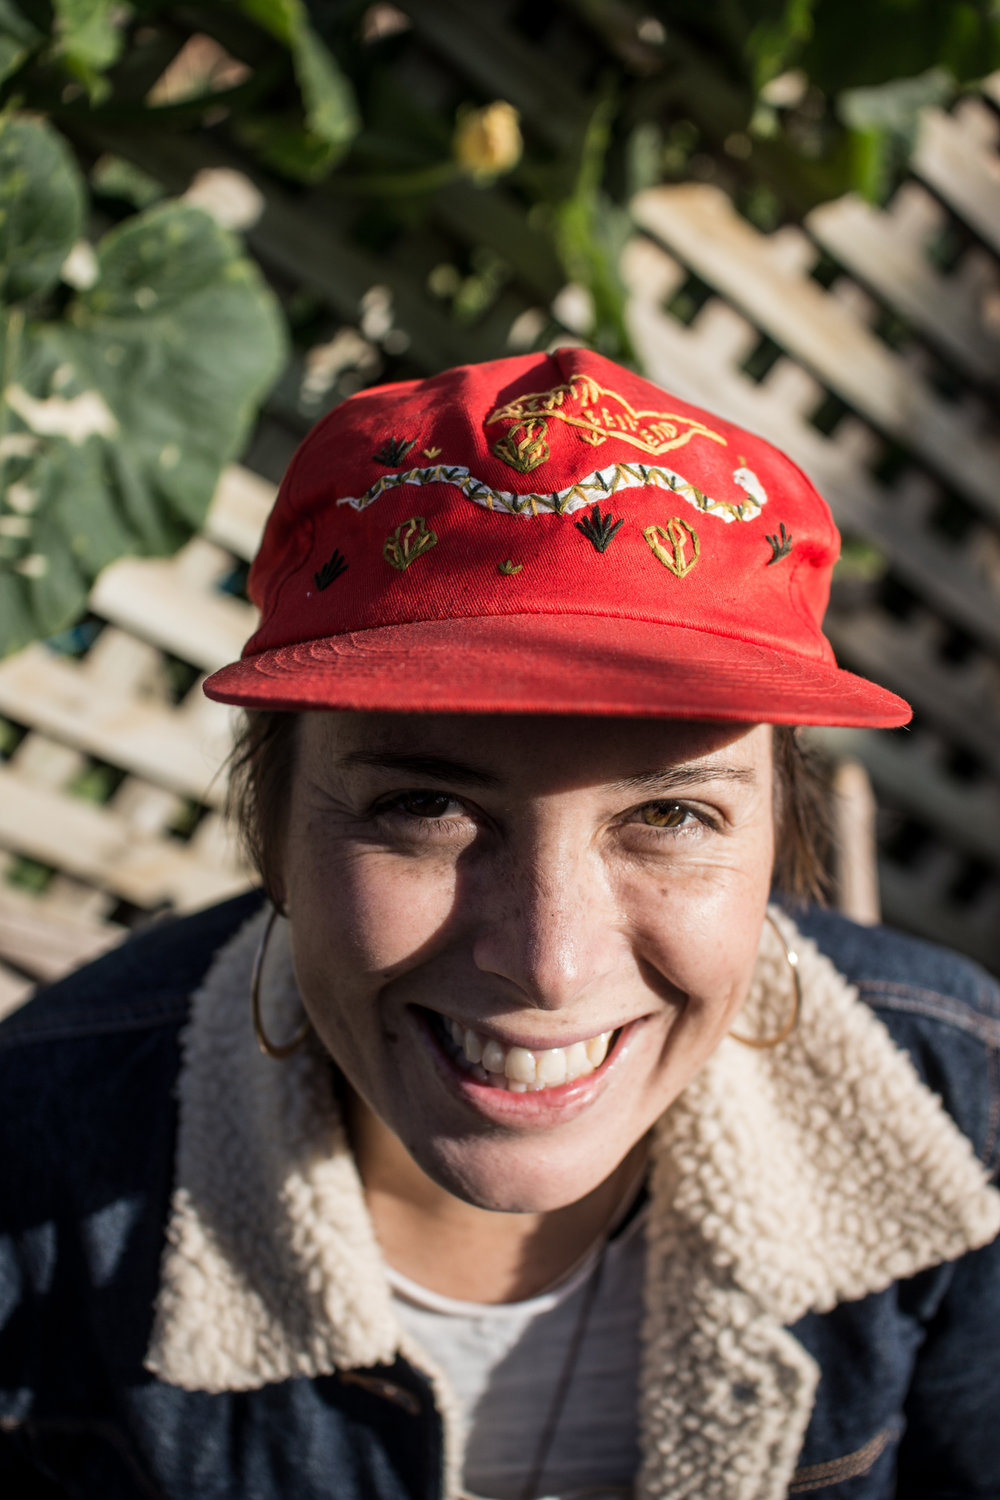 Jasper Leijs shot this one of me in one of my Get Wild hats the other day! Yew!! I still haven't taken this one off..